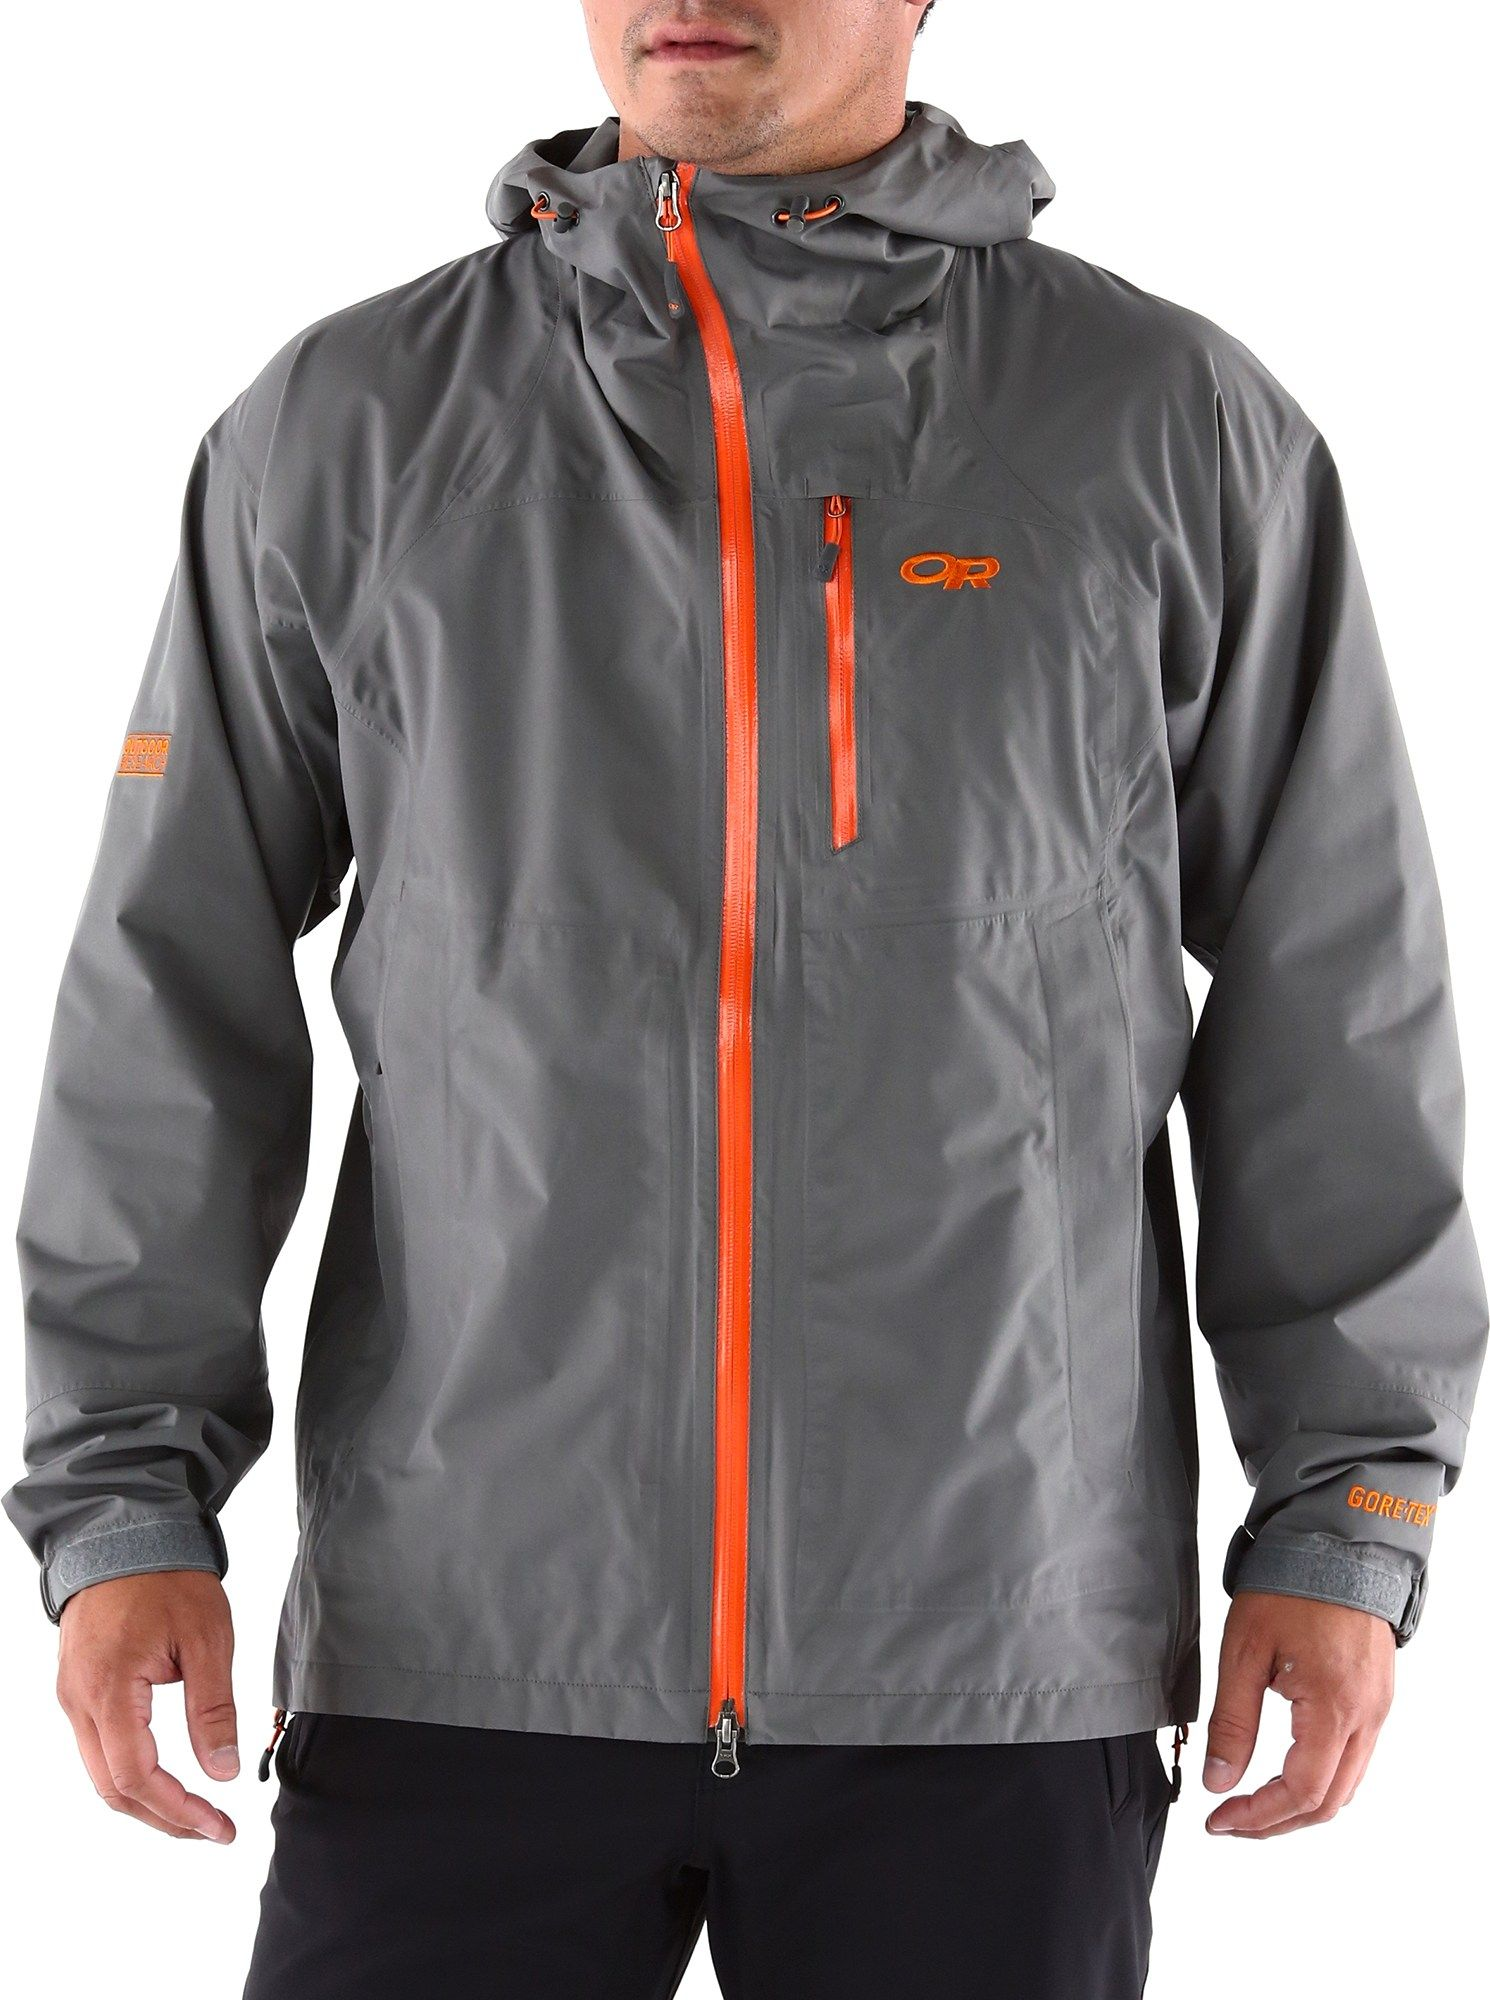 Outdoor Research Men's Foray Rain Jacket Shade XXL | Coats, Kid ...